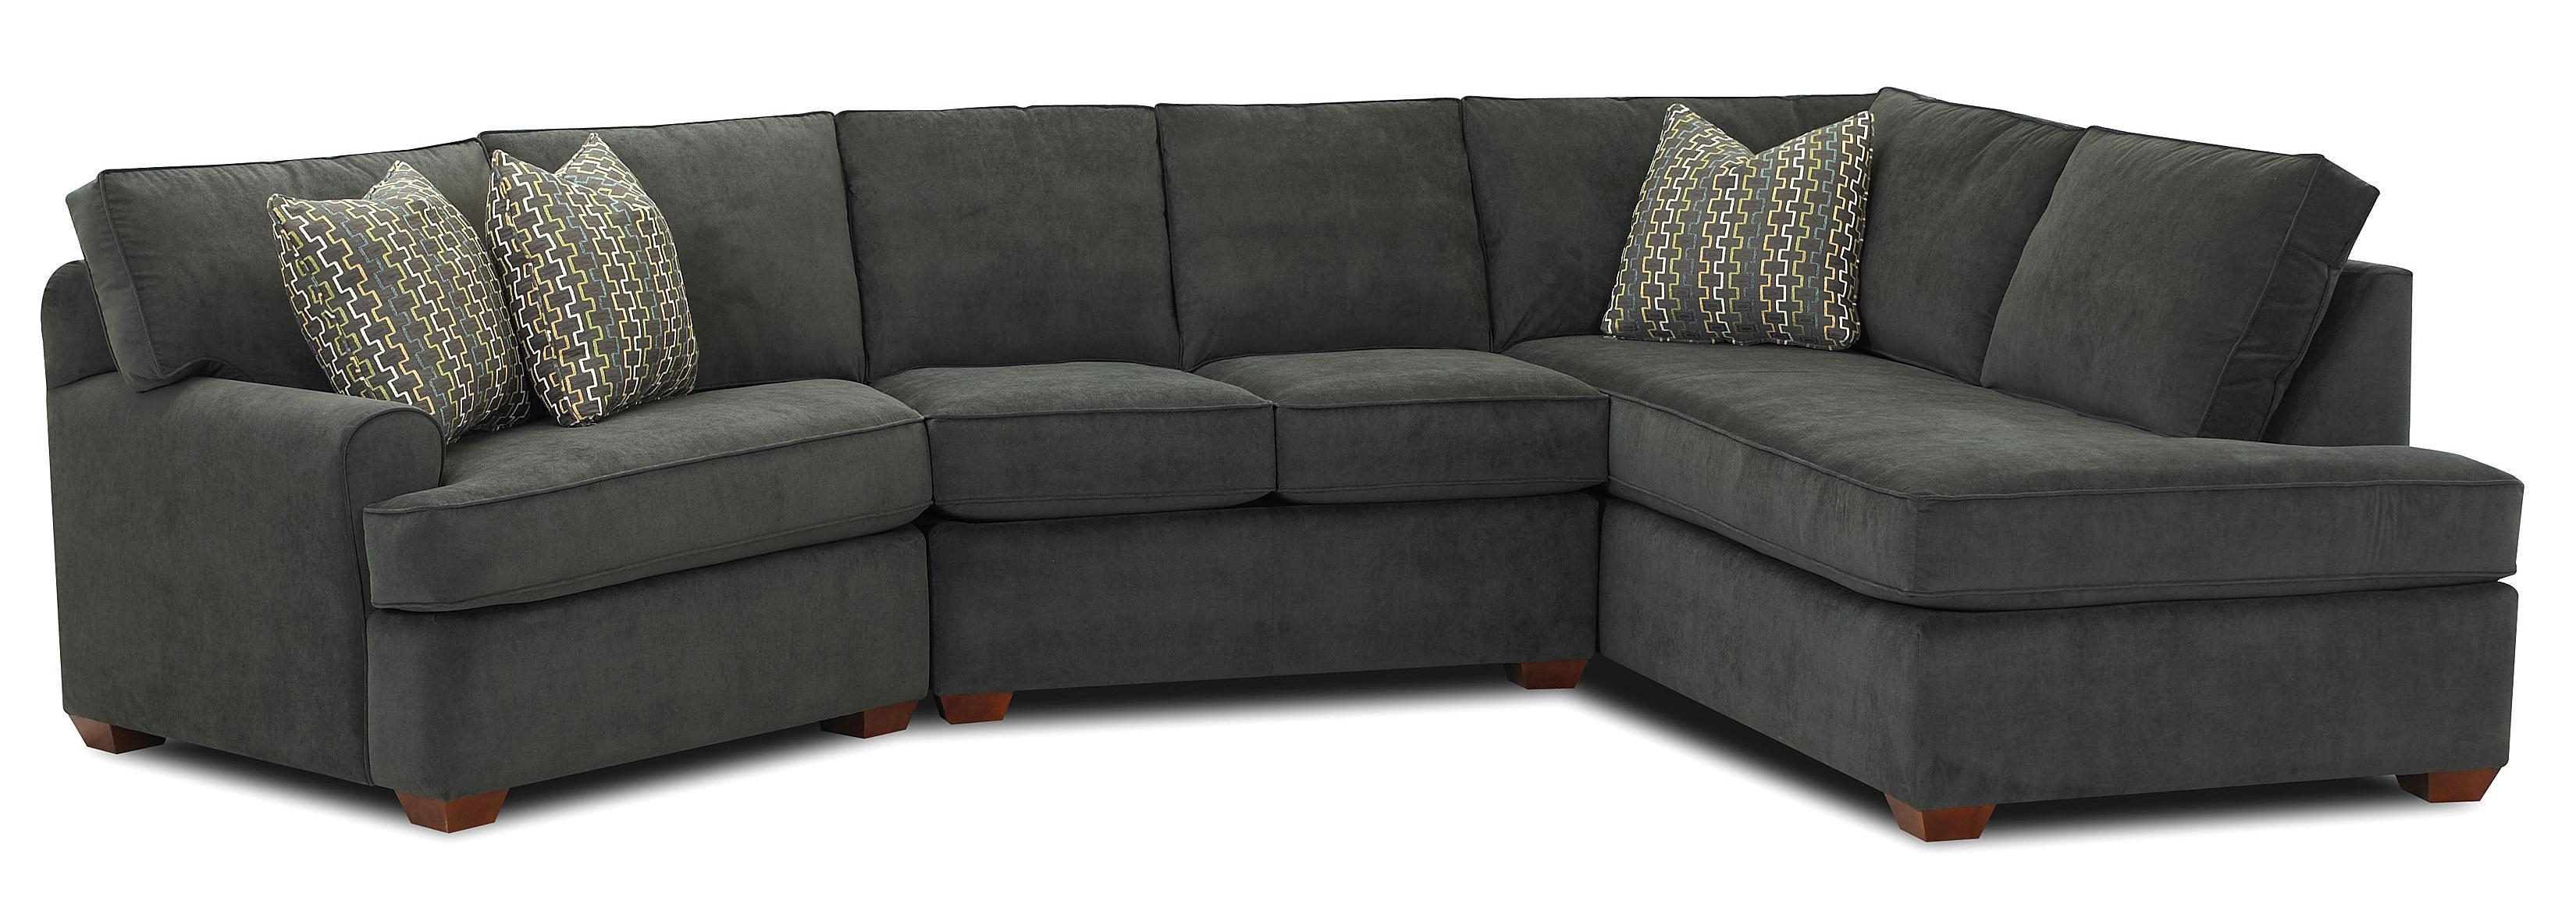 Furniture: Modern Chaise Sectional With Classic Comfortable Design For Sofas And Sectionals (View 5 of 20)